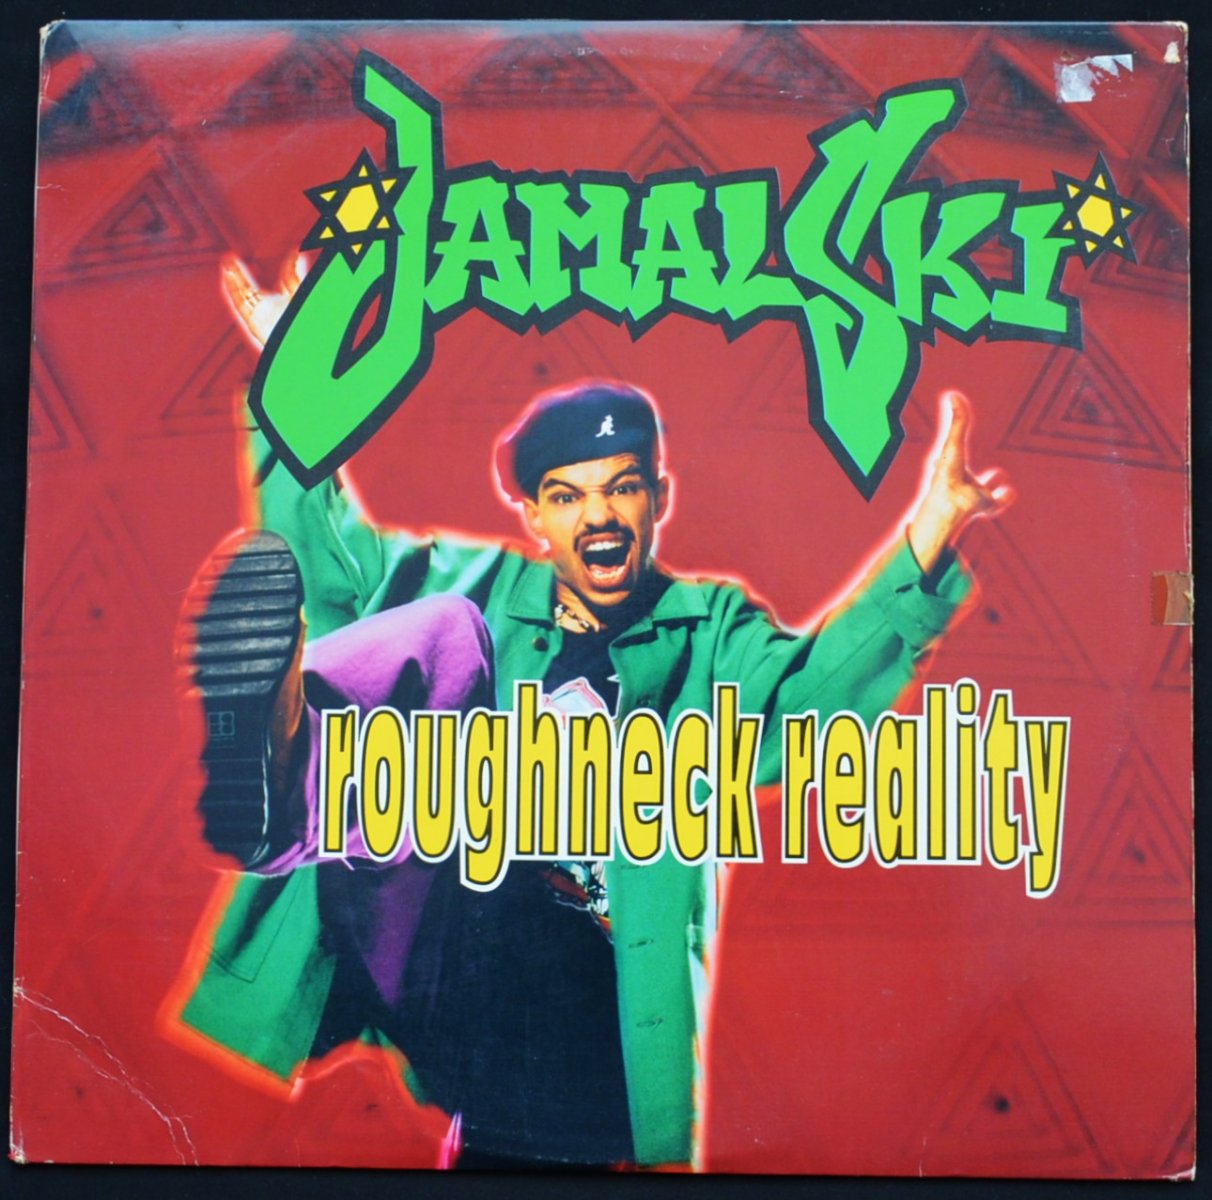 JAMAL SKI / ROUGHNECK REALITY (1LP)